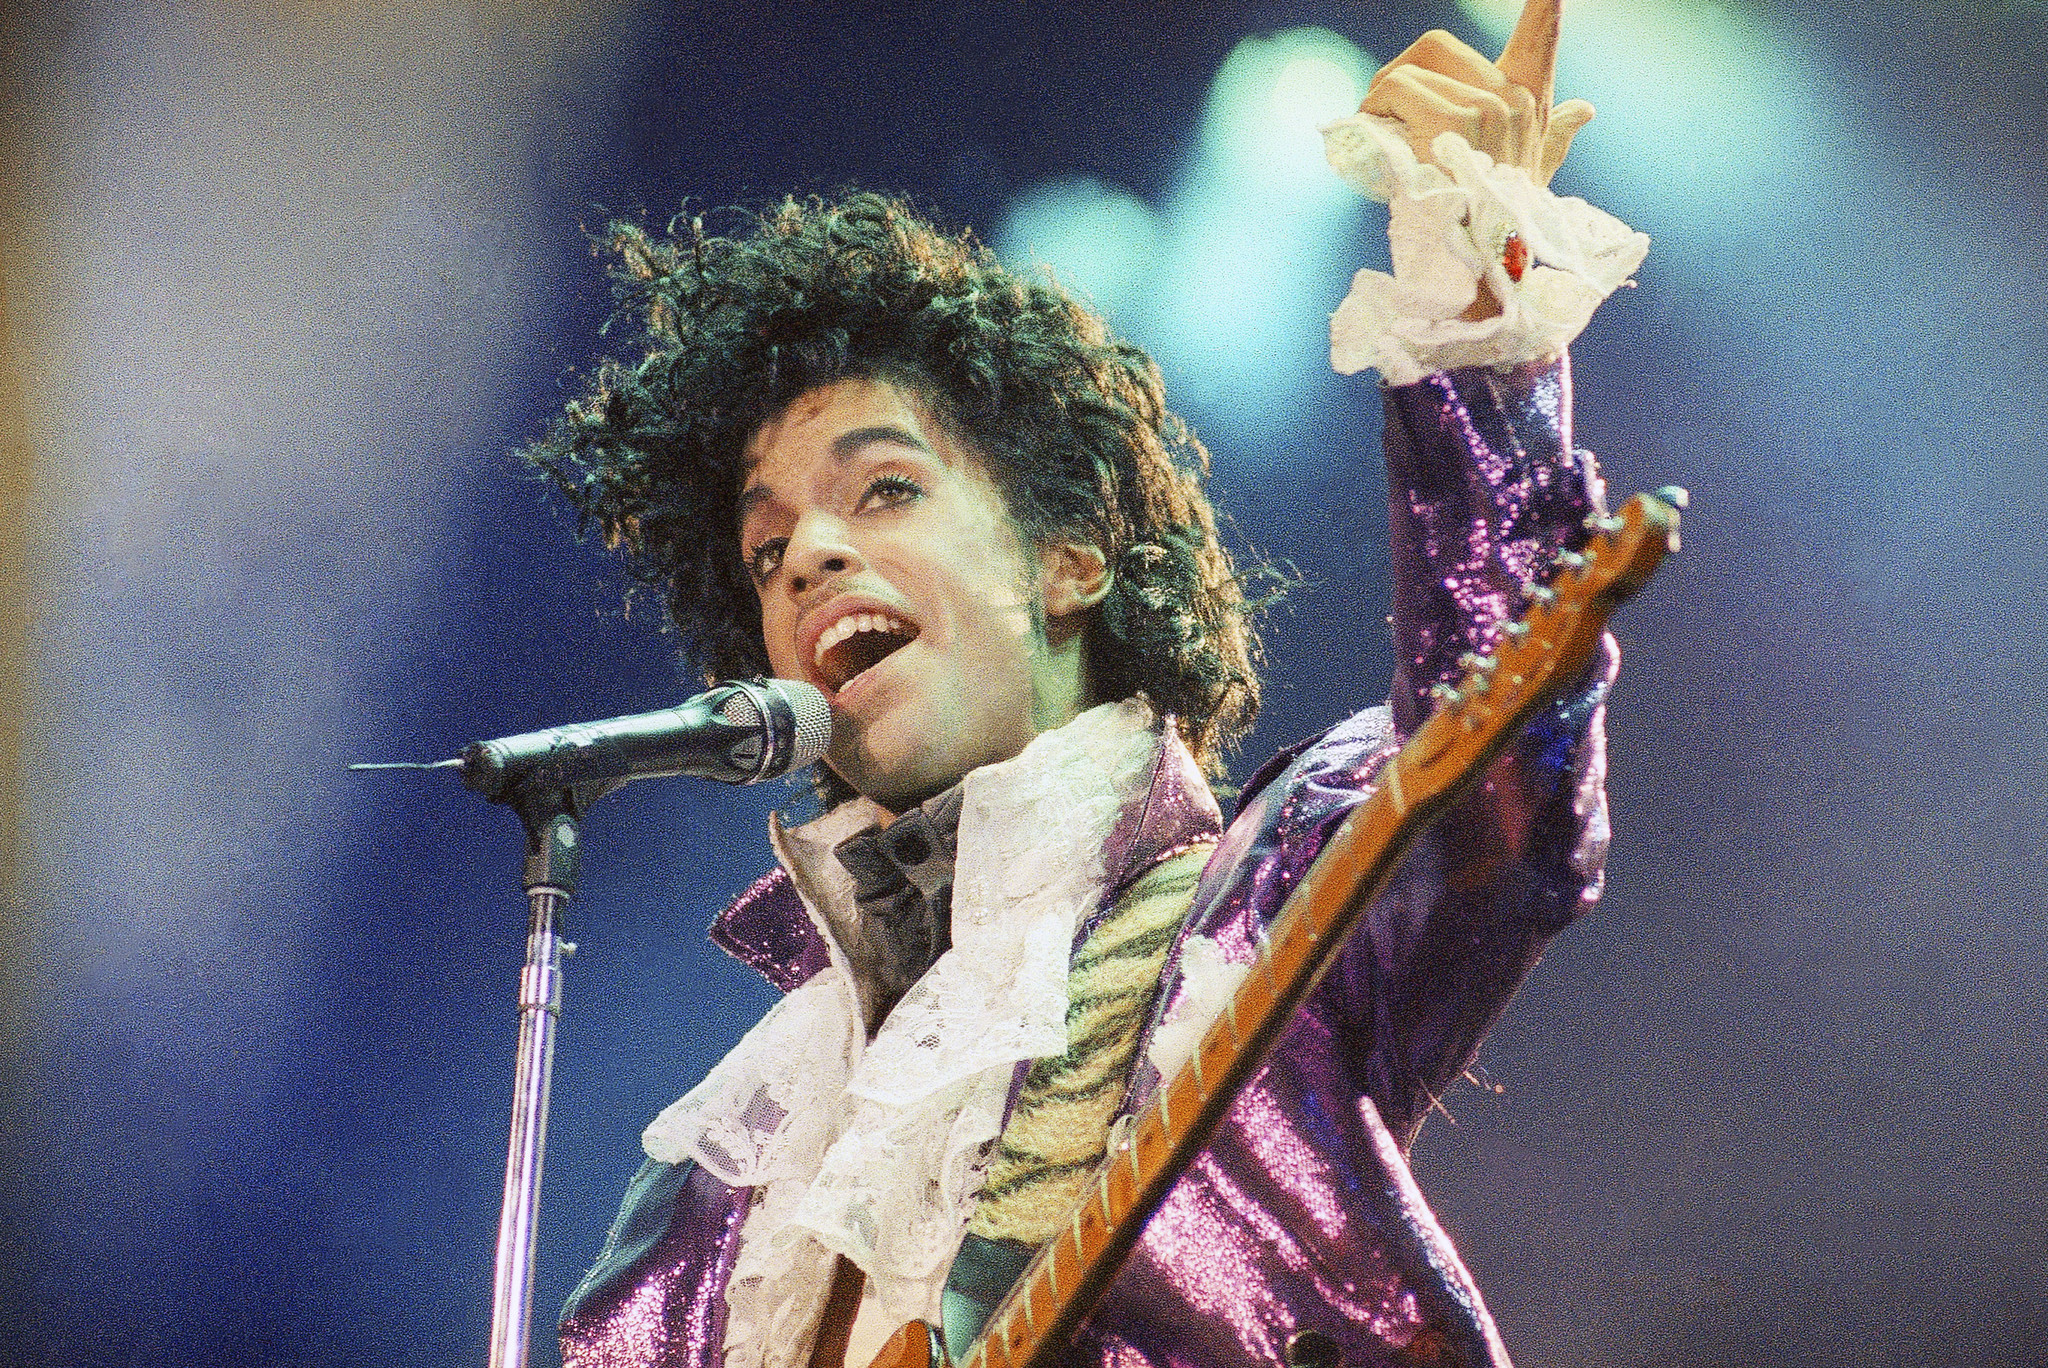 Prince's 6 siblings named as heirs to his estate